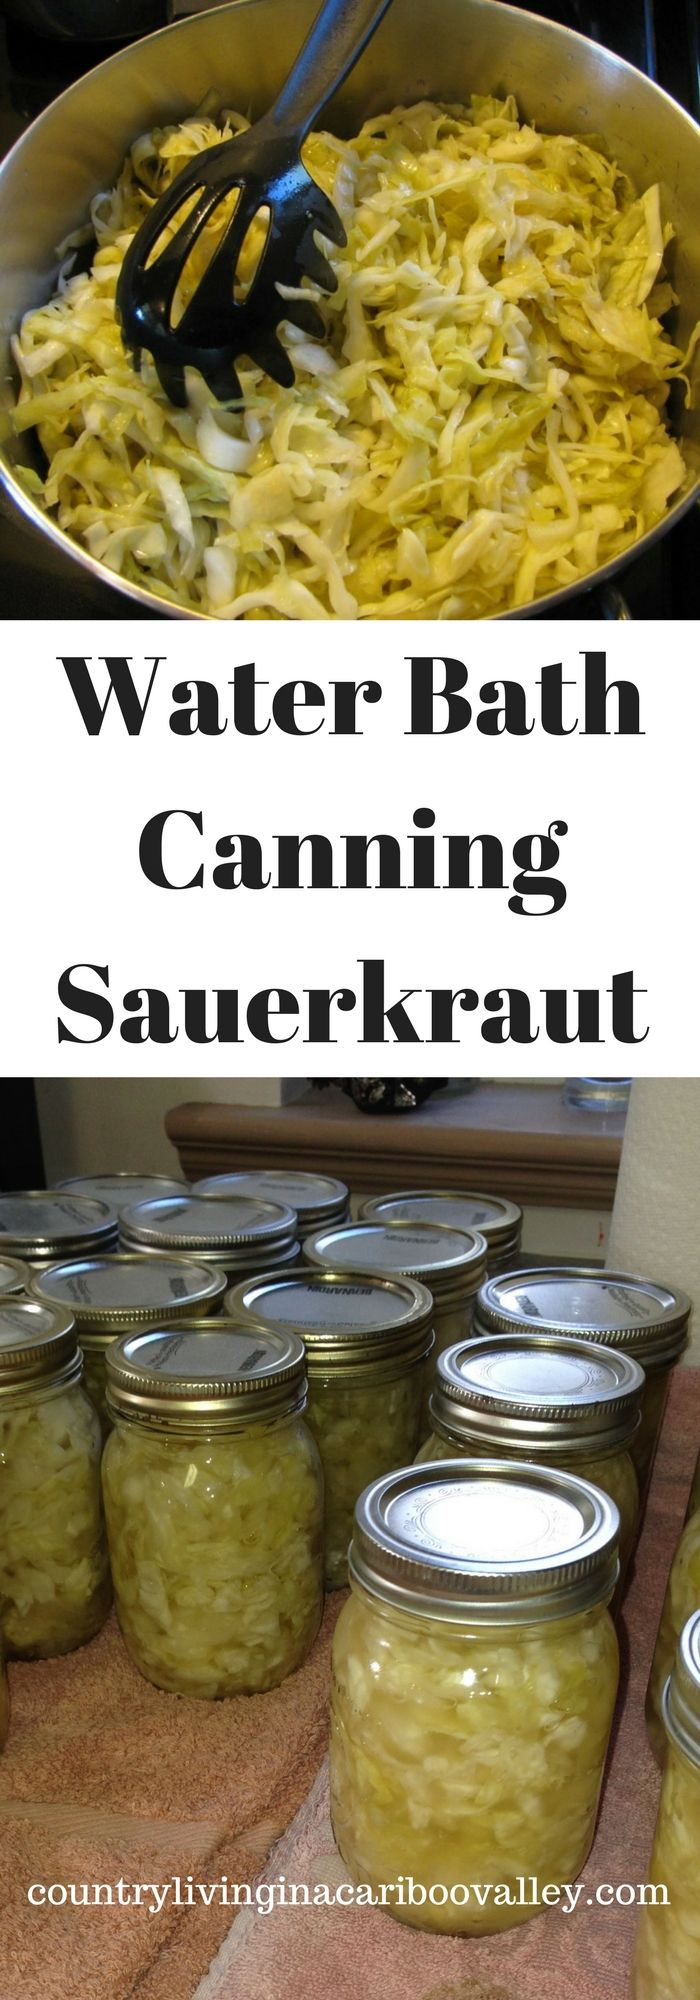 It's easy to home can Sauerkraut! Water bath canning is a great way to learn how to can.